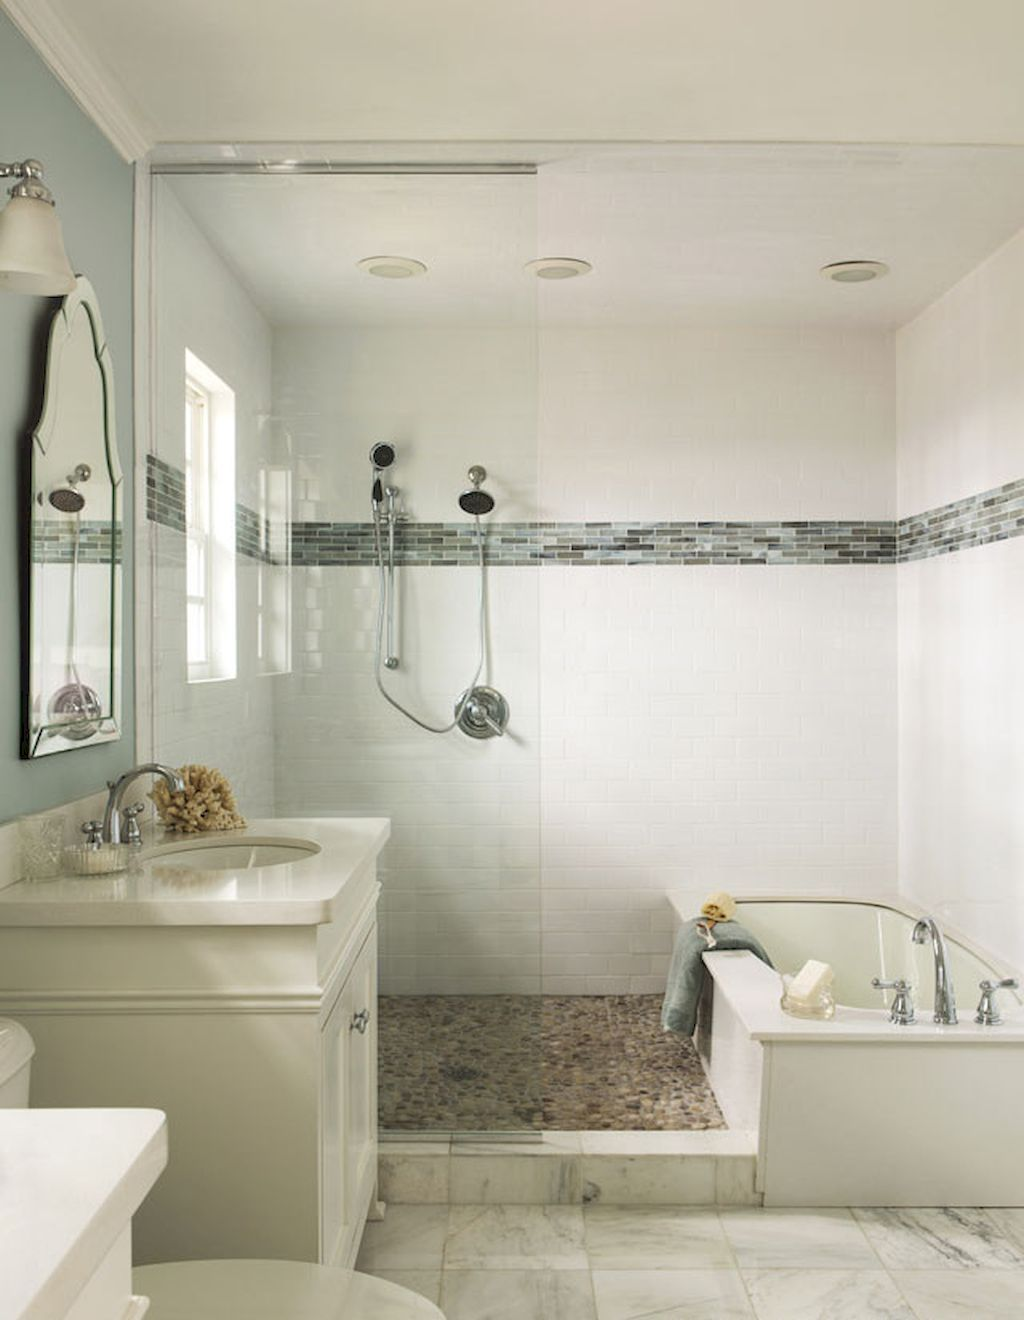 cool small bathroom shower remodel ideas 26 small on cool small bathroom design ideas id=72265